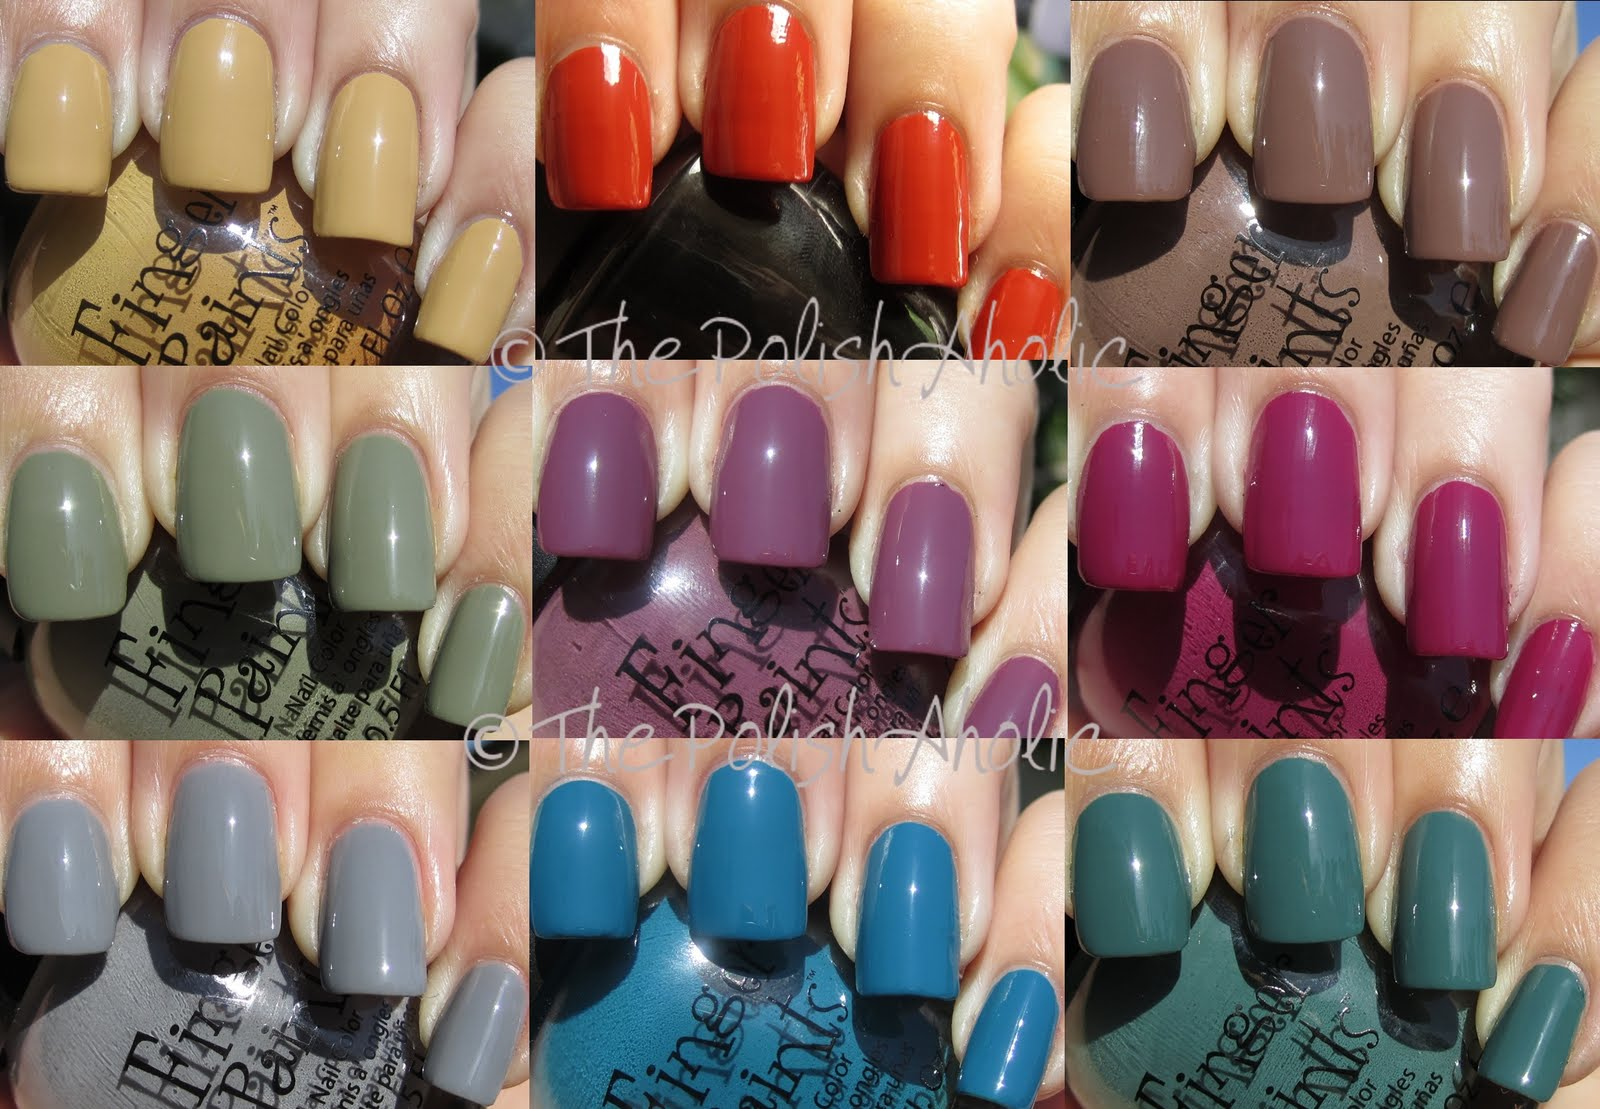 The PolishAholic: FingerPaints Fall Fashionista Fall 2011 Collection ...